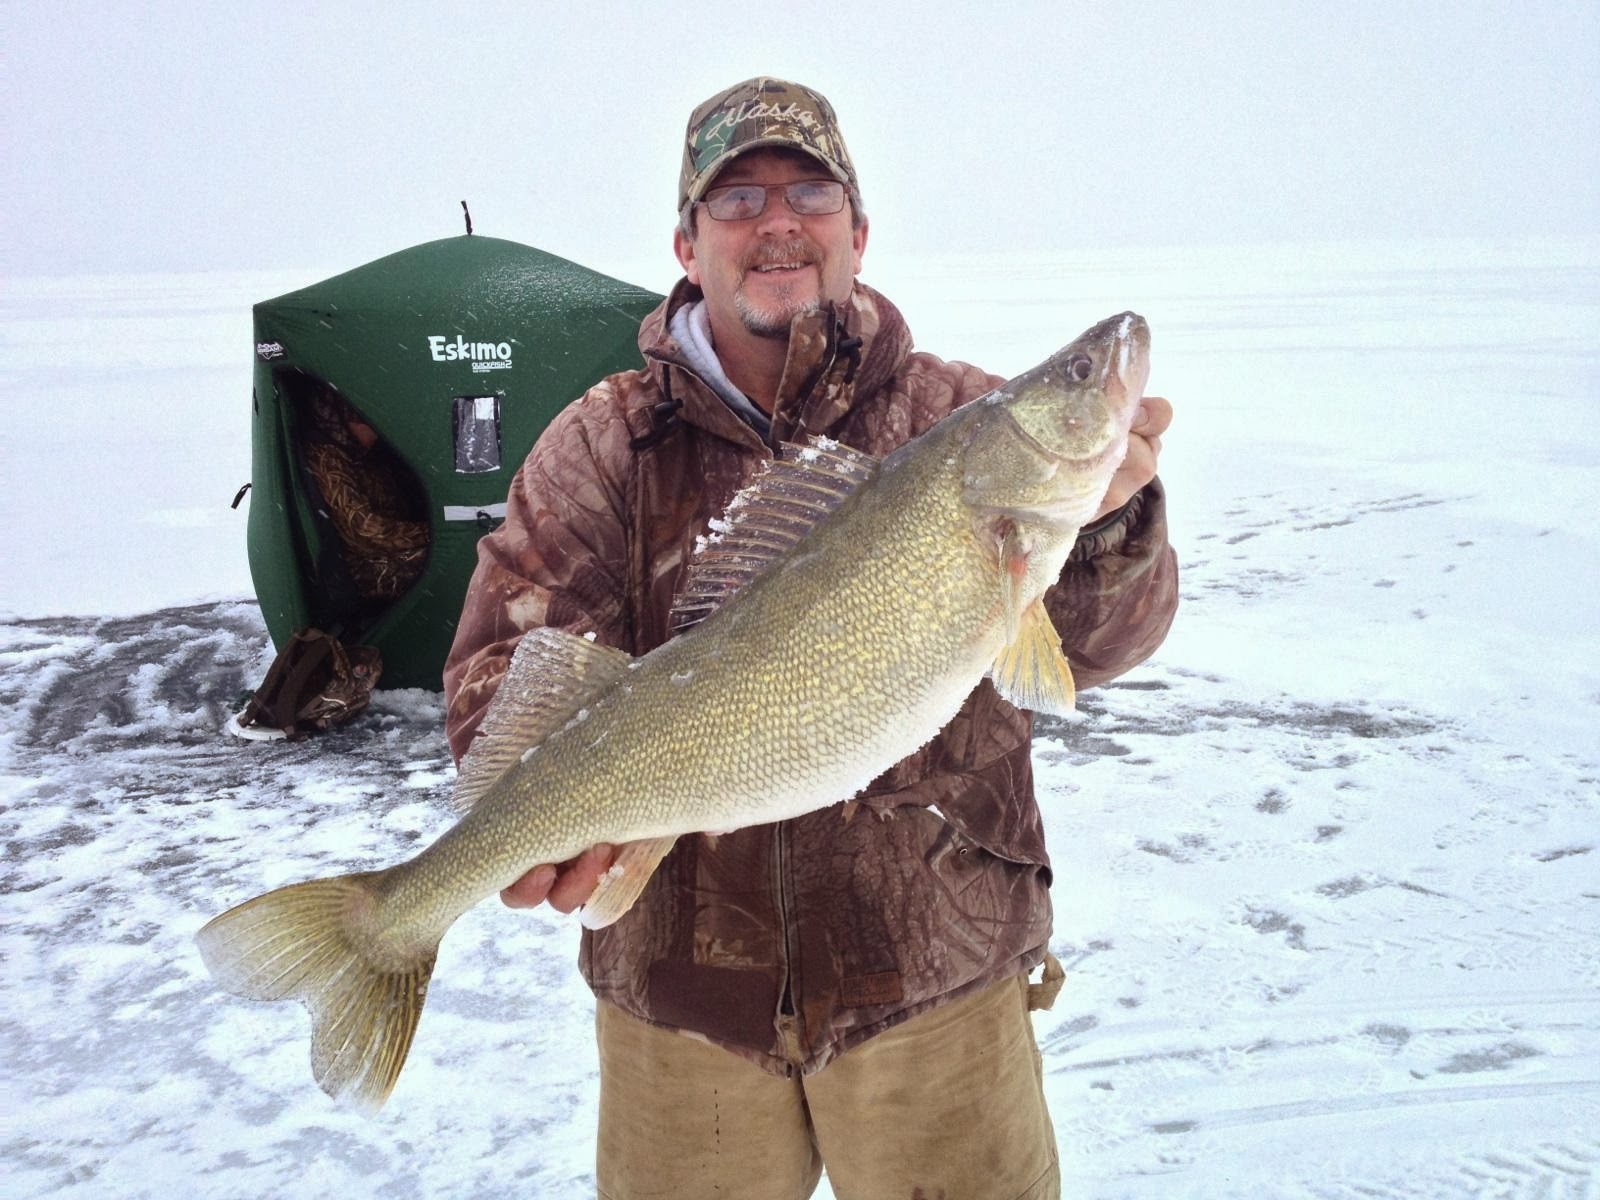 Lake erie walleye fishing reports february 2014 for Lake erie ice fishing